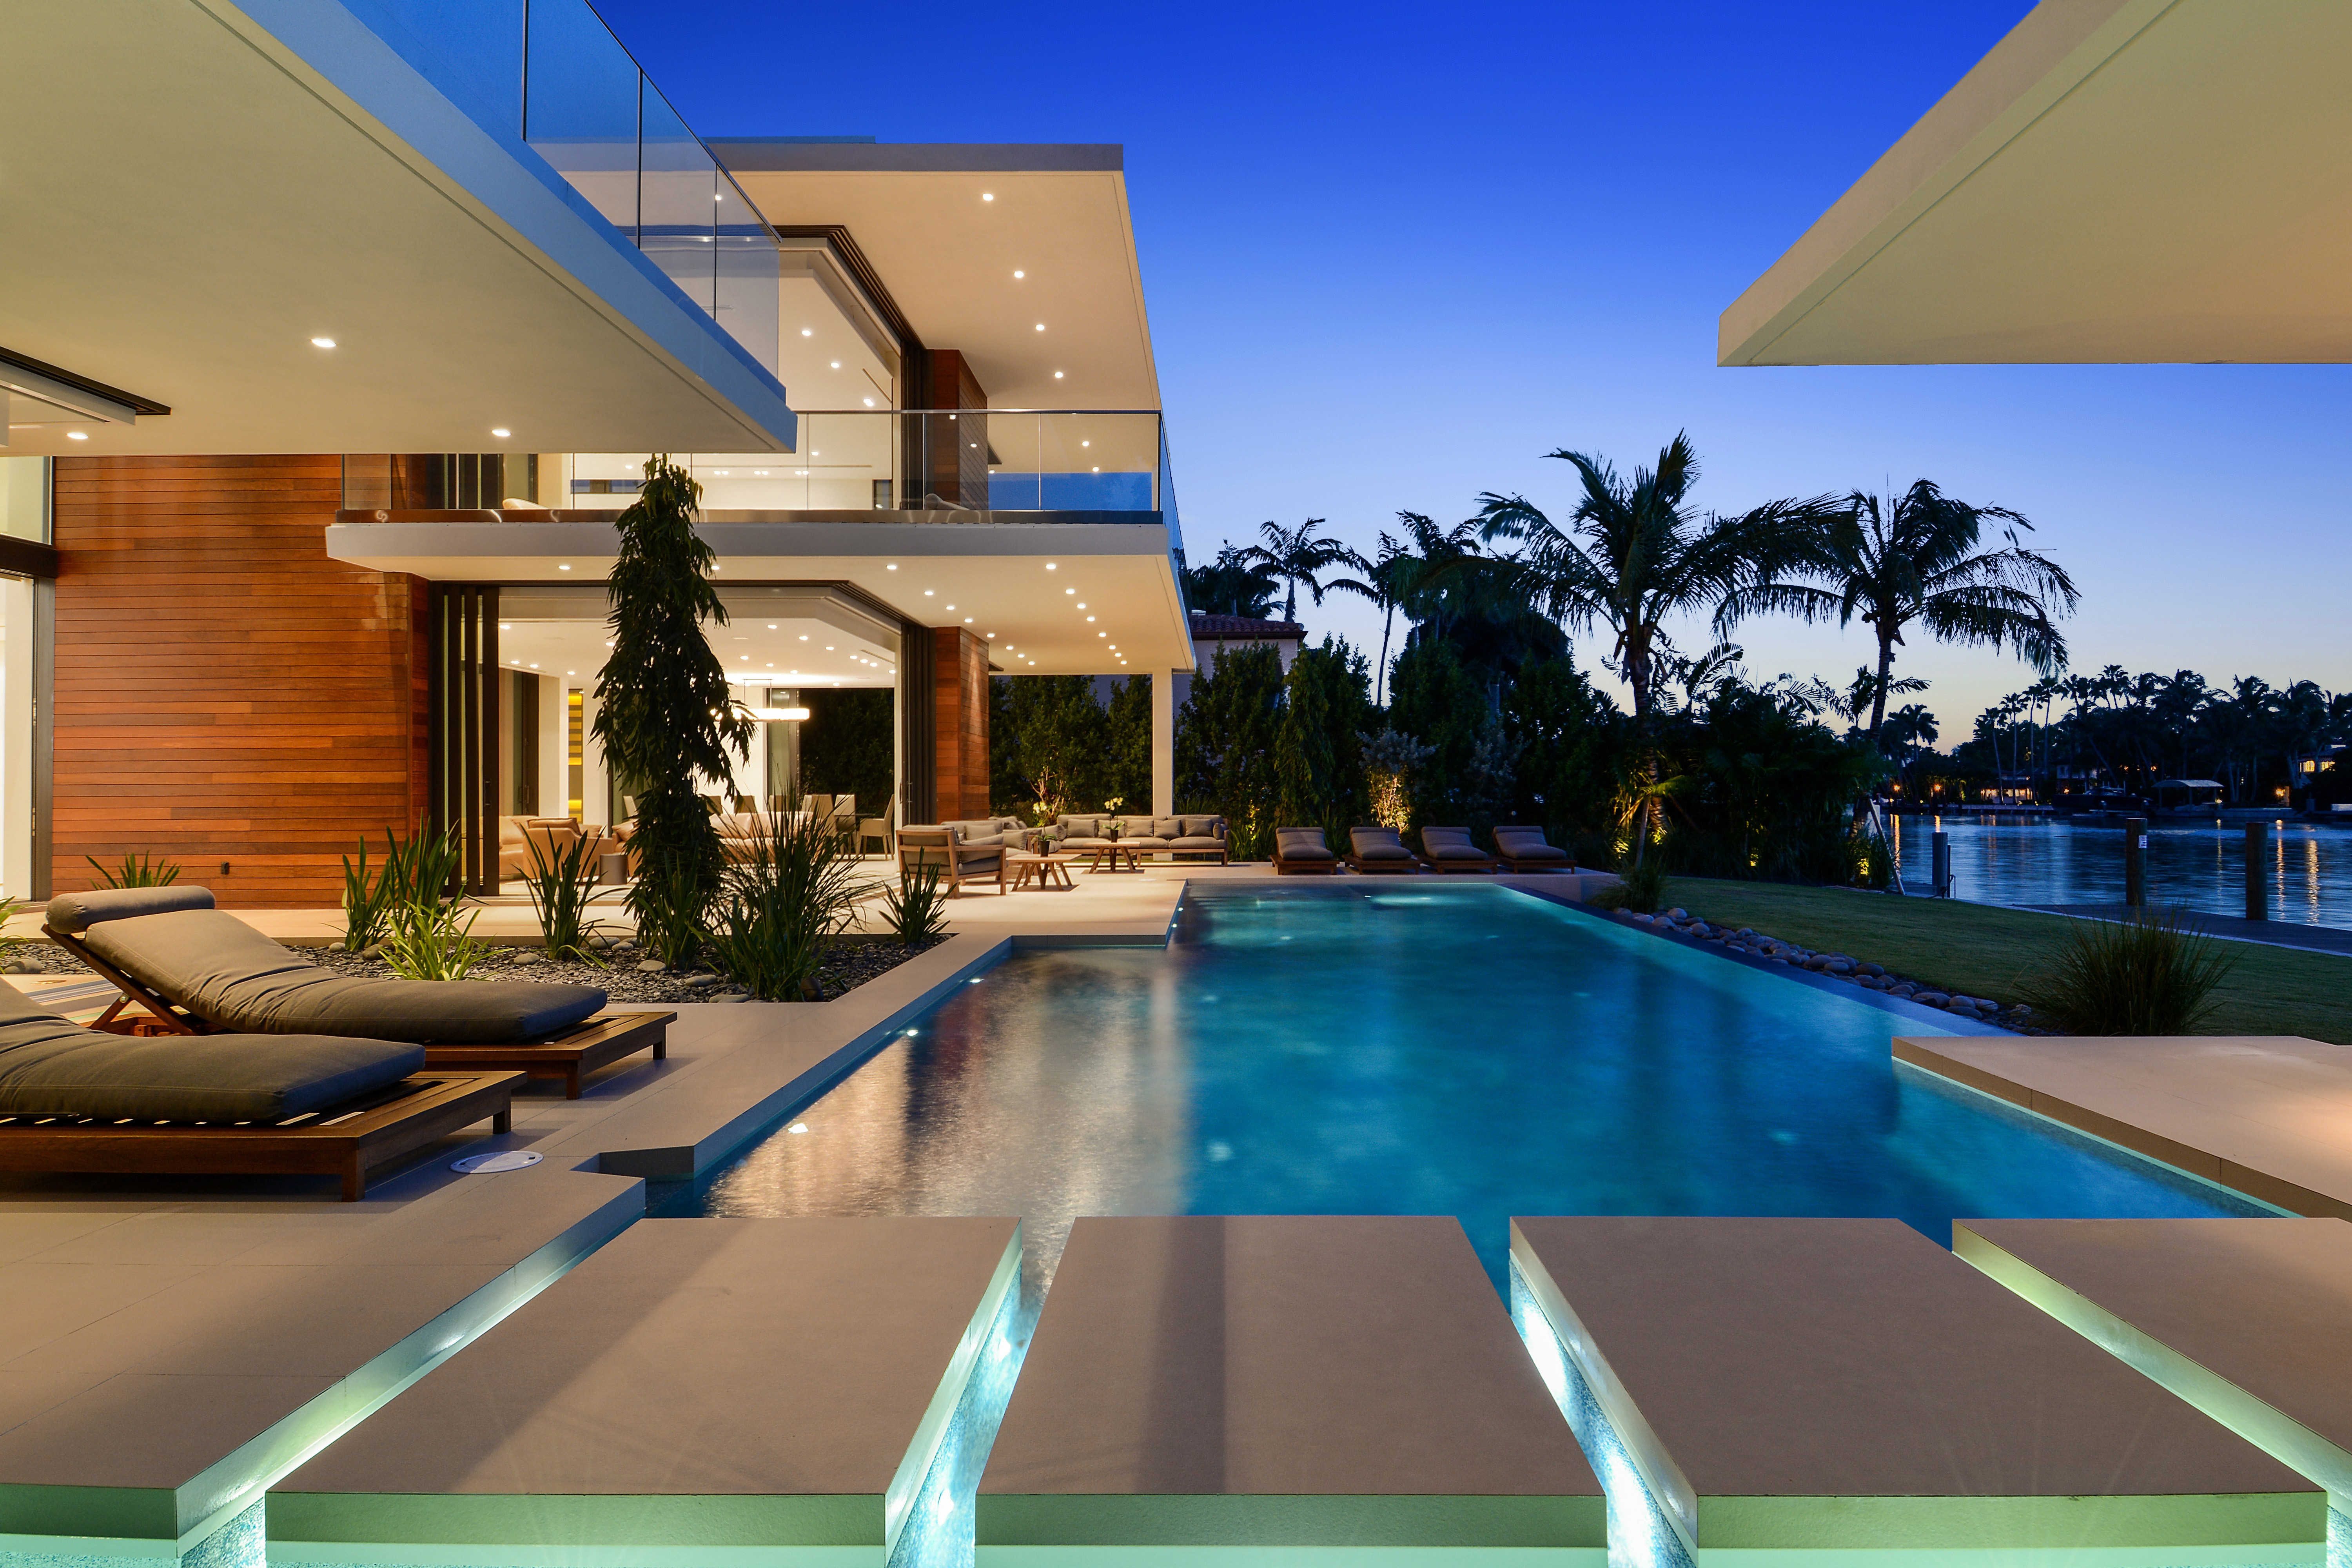 Miami Beach Atrium House Wallpaper 5k High Resolution